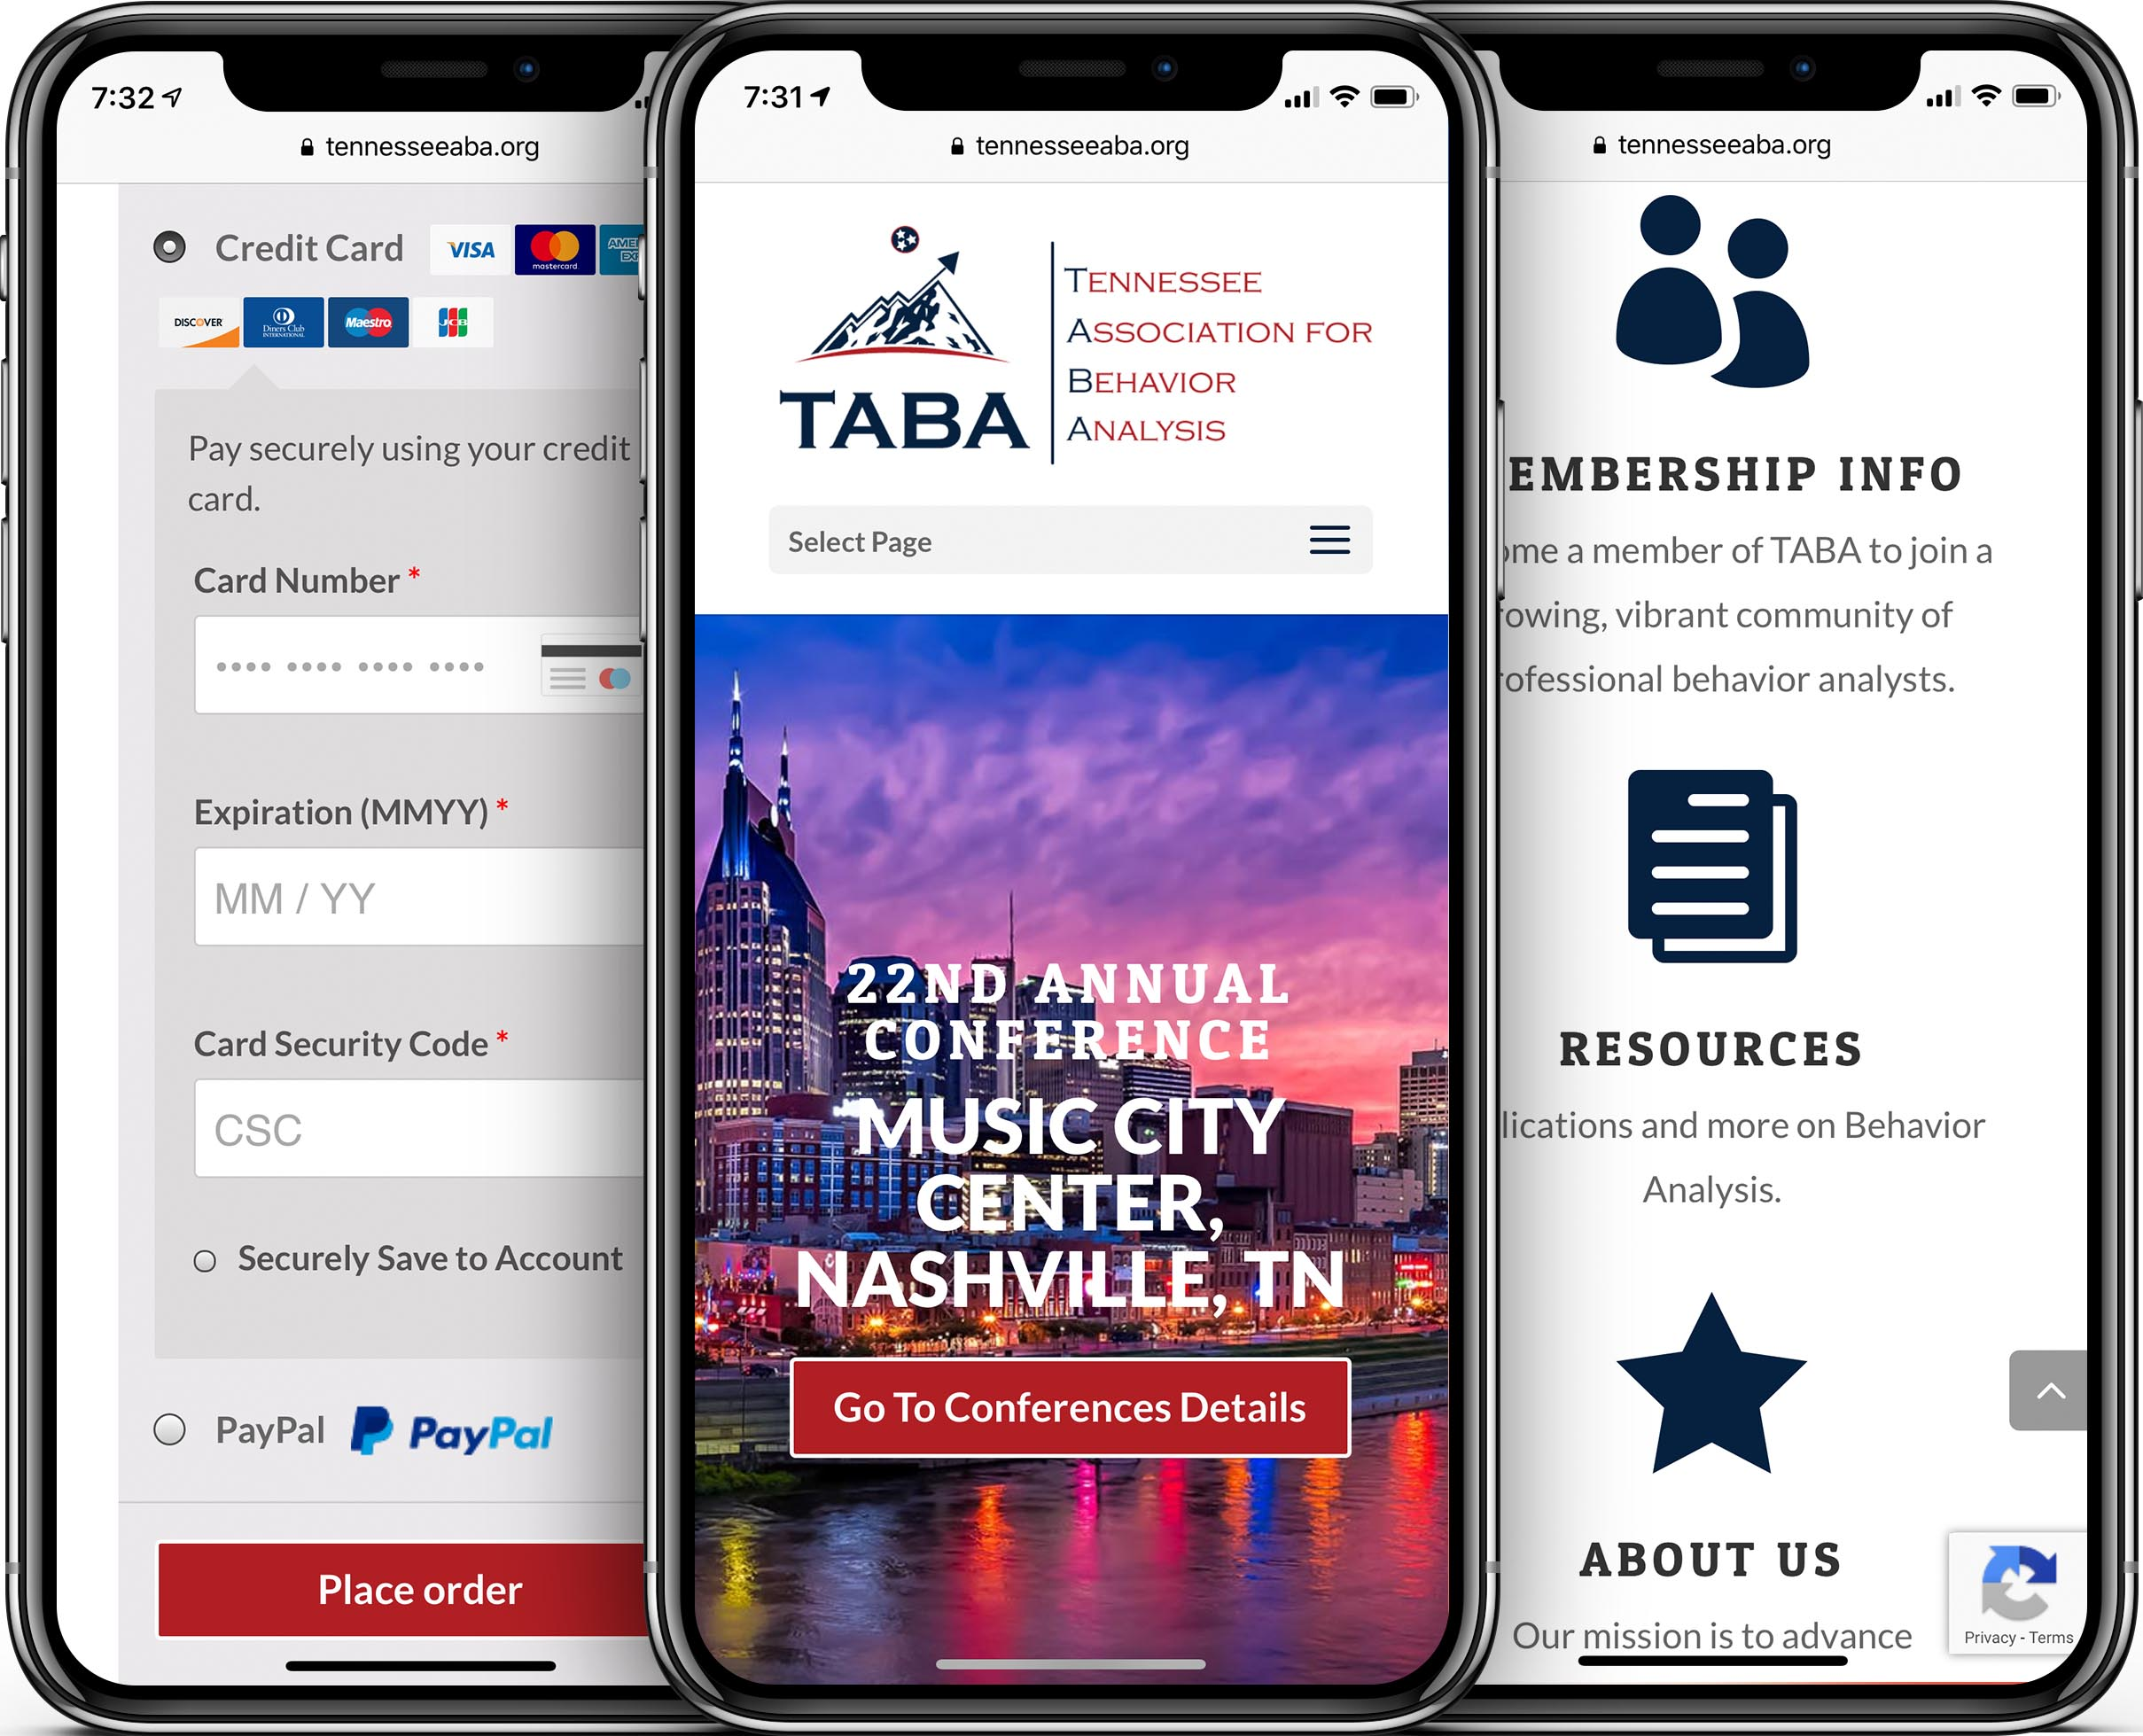 Tennessee Association for Behavior Analysis Mobile-Friendly Web Design